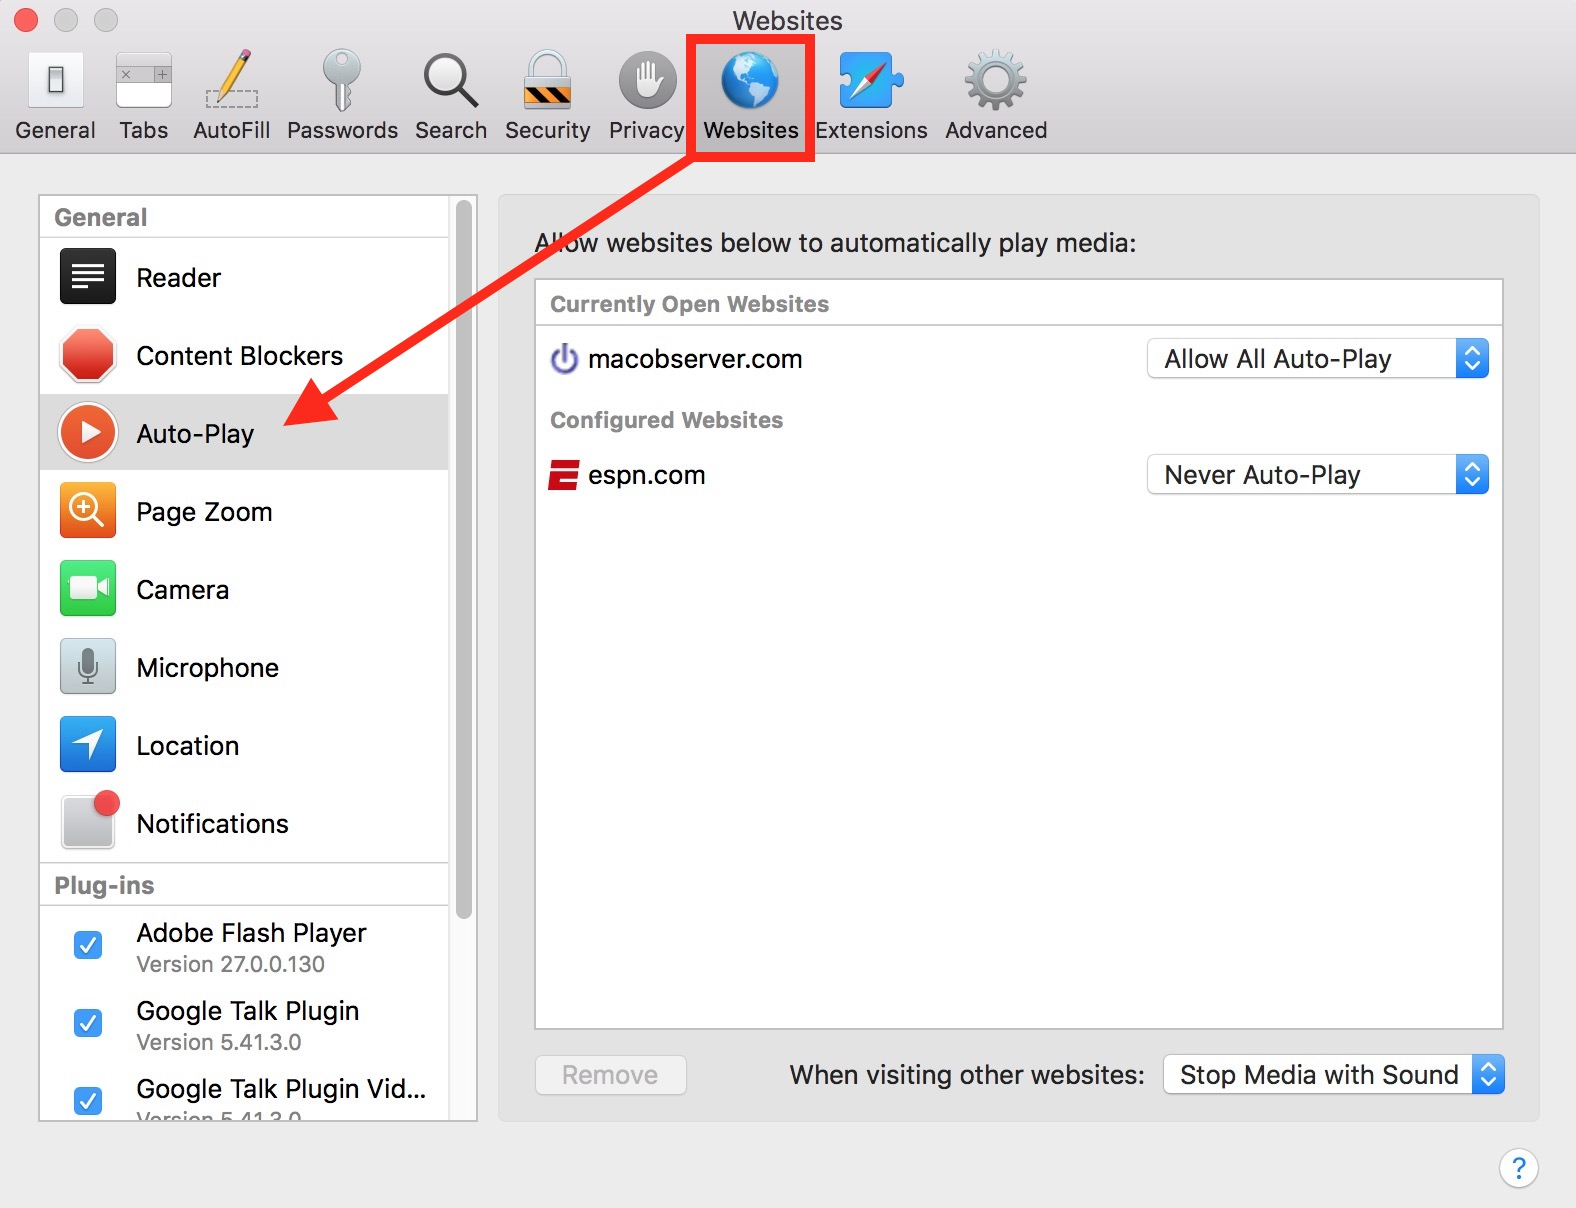 Safari Auto-Play Preferences for Websites